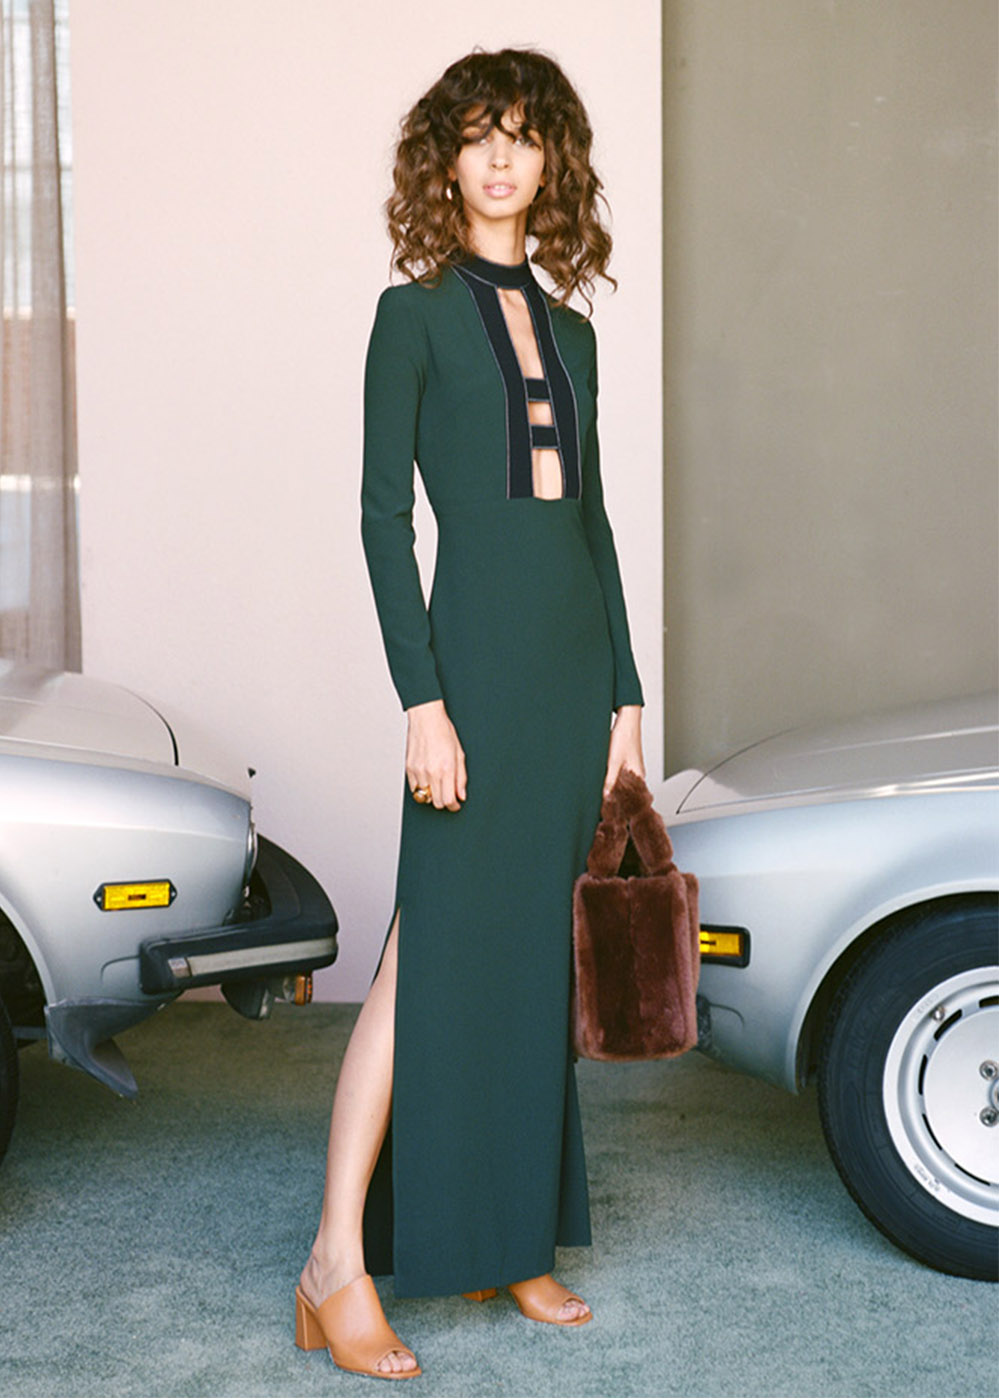 Staud 'Myo' dress in Dark Green, $255